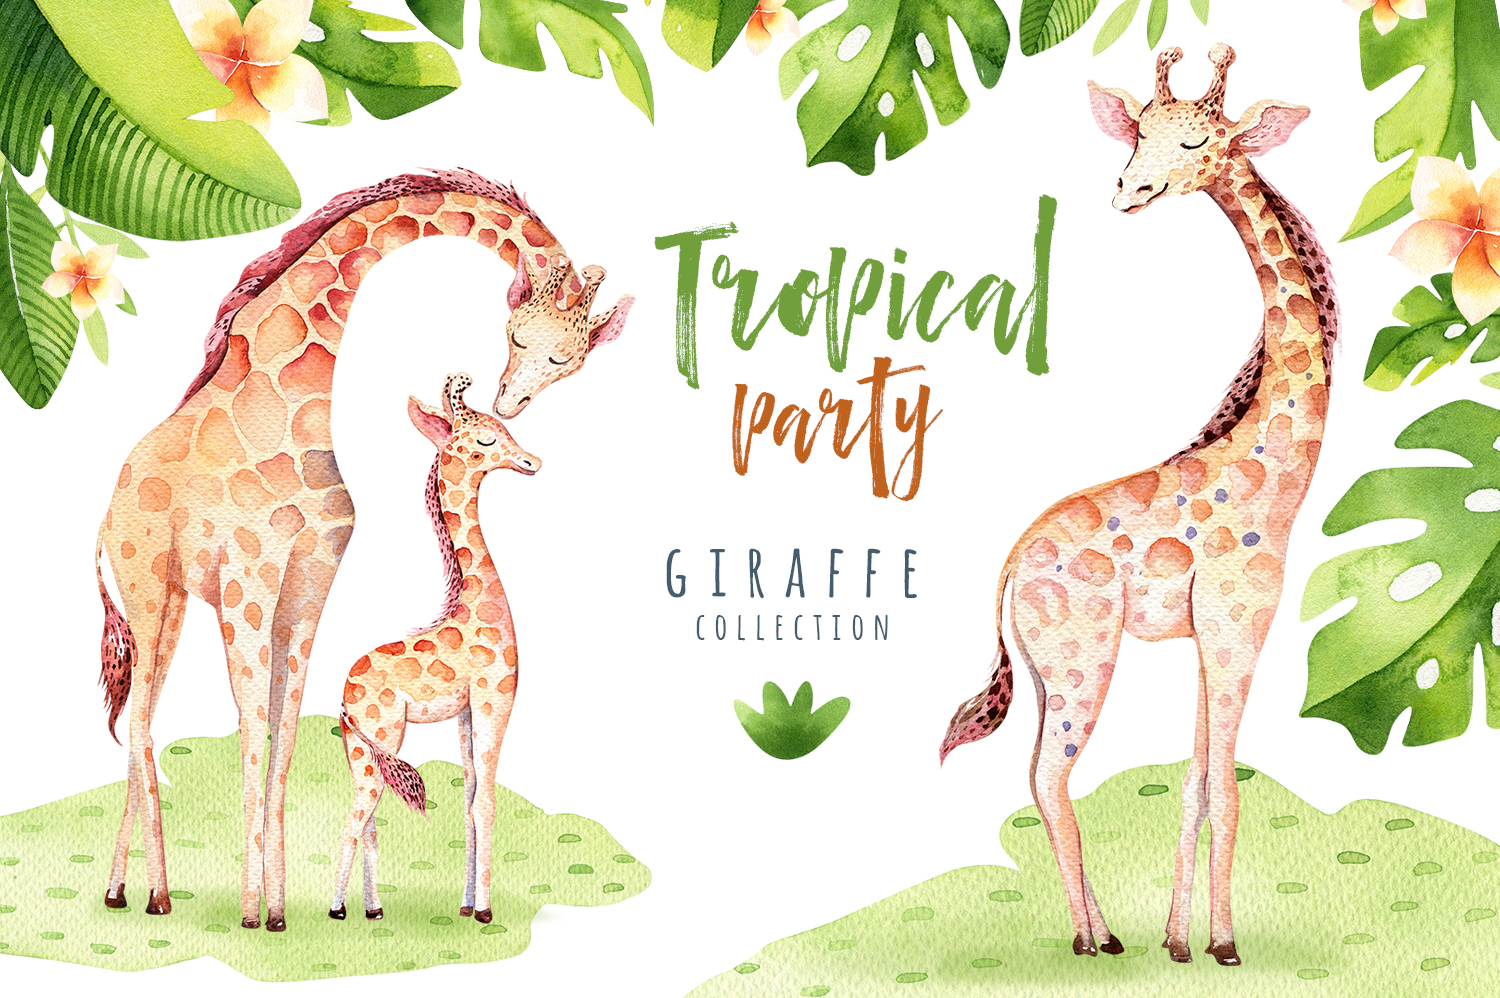 Giraffe collection. Tropical party example image 2